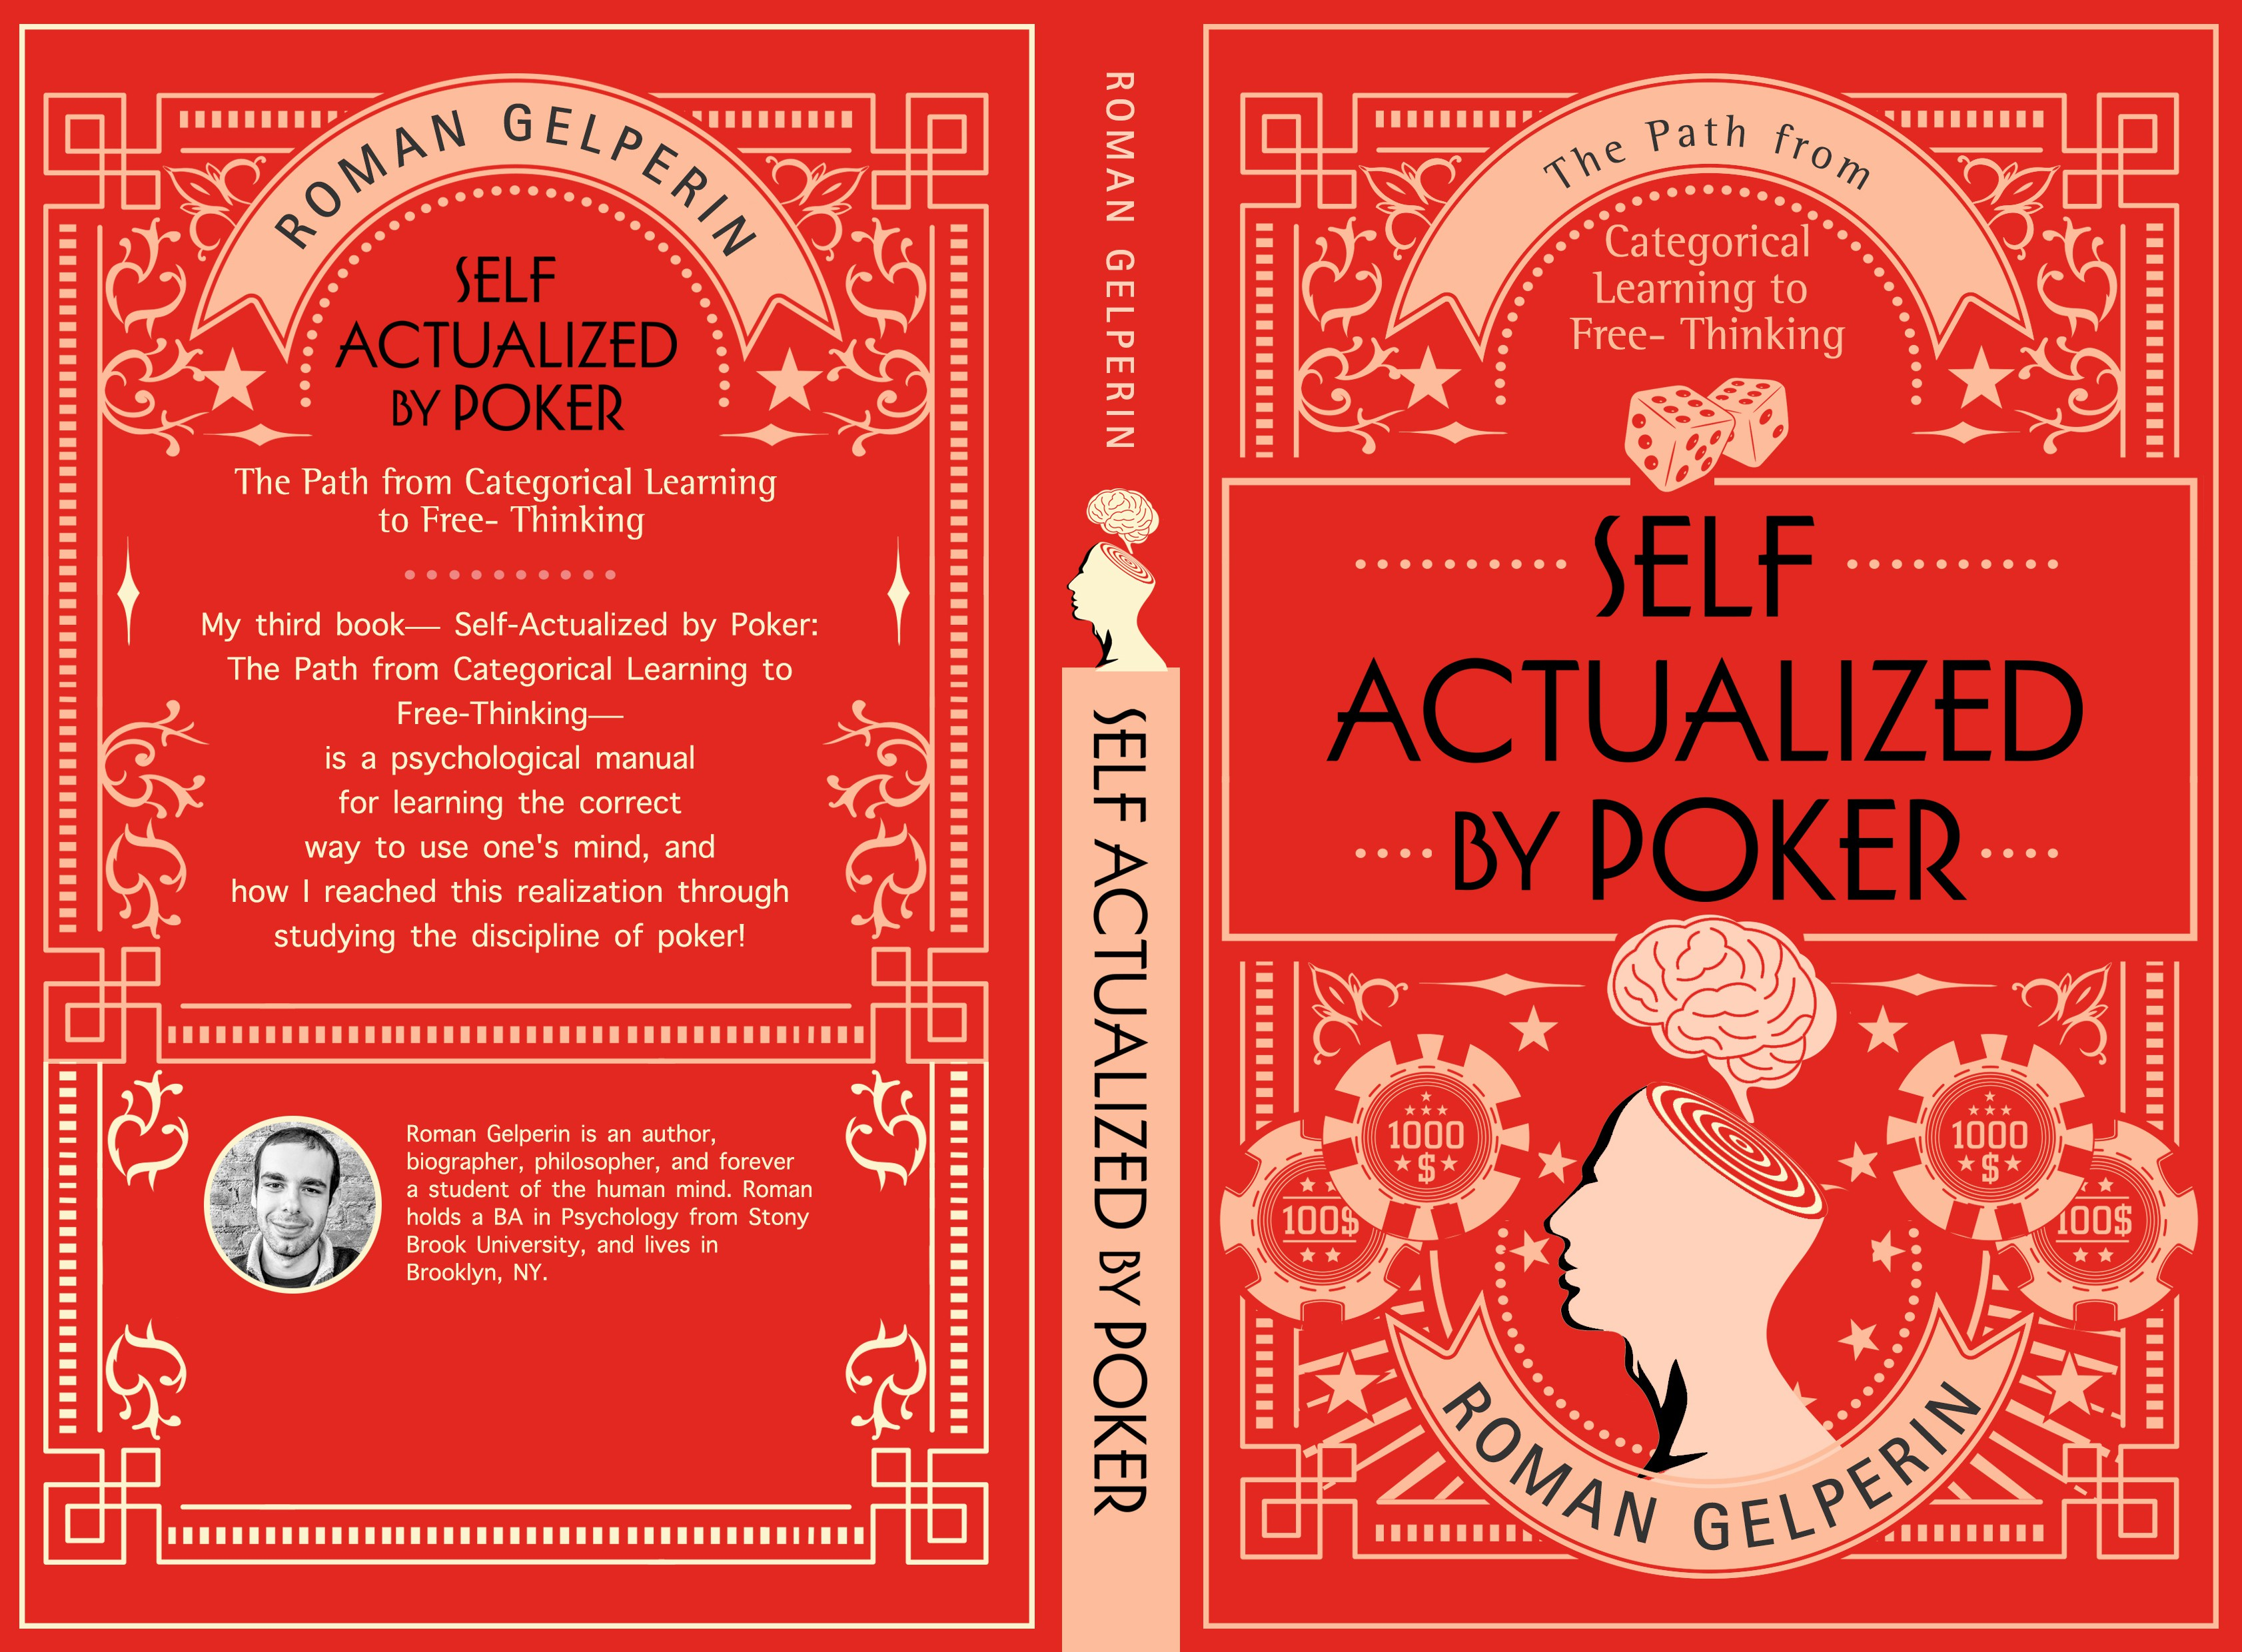 Self-Actualized by Poker! (Book Cover for a short book about Psychology and Poker)